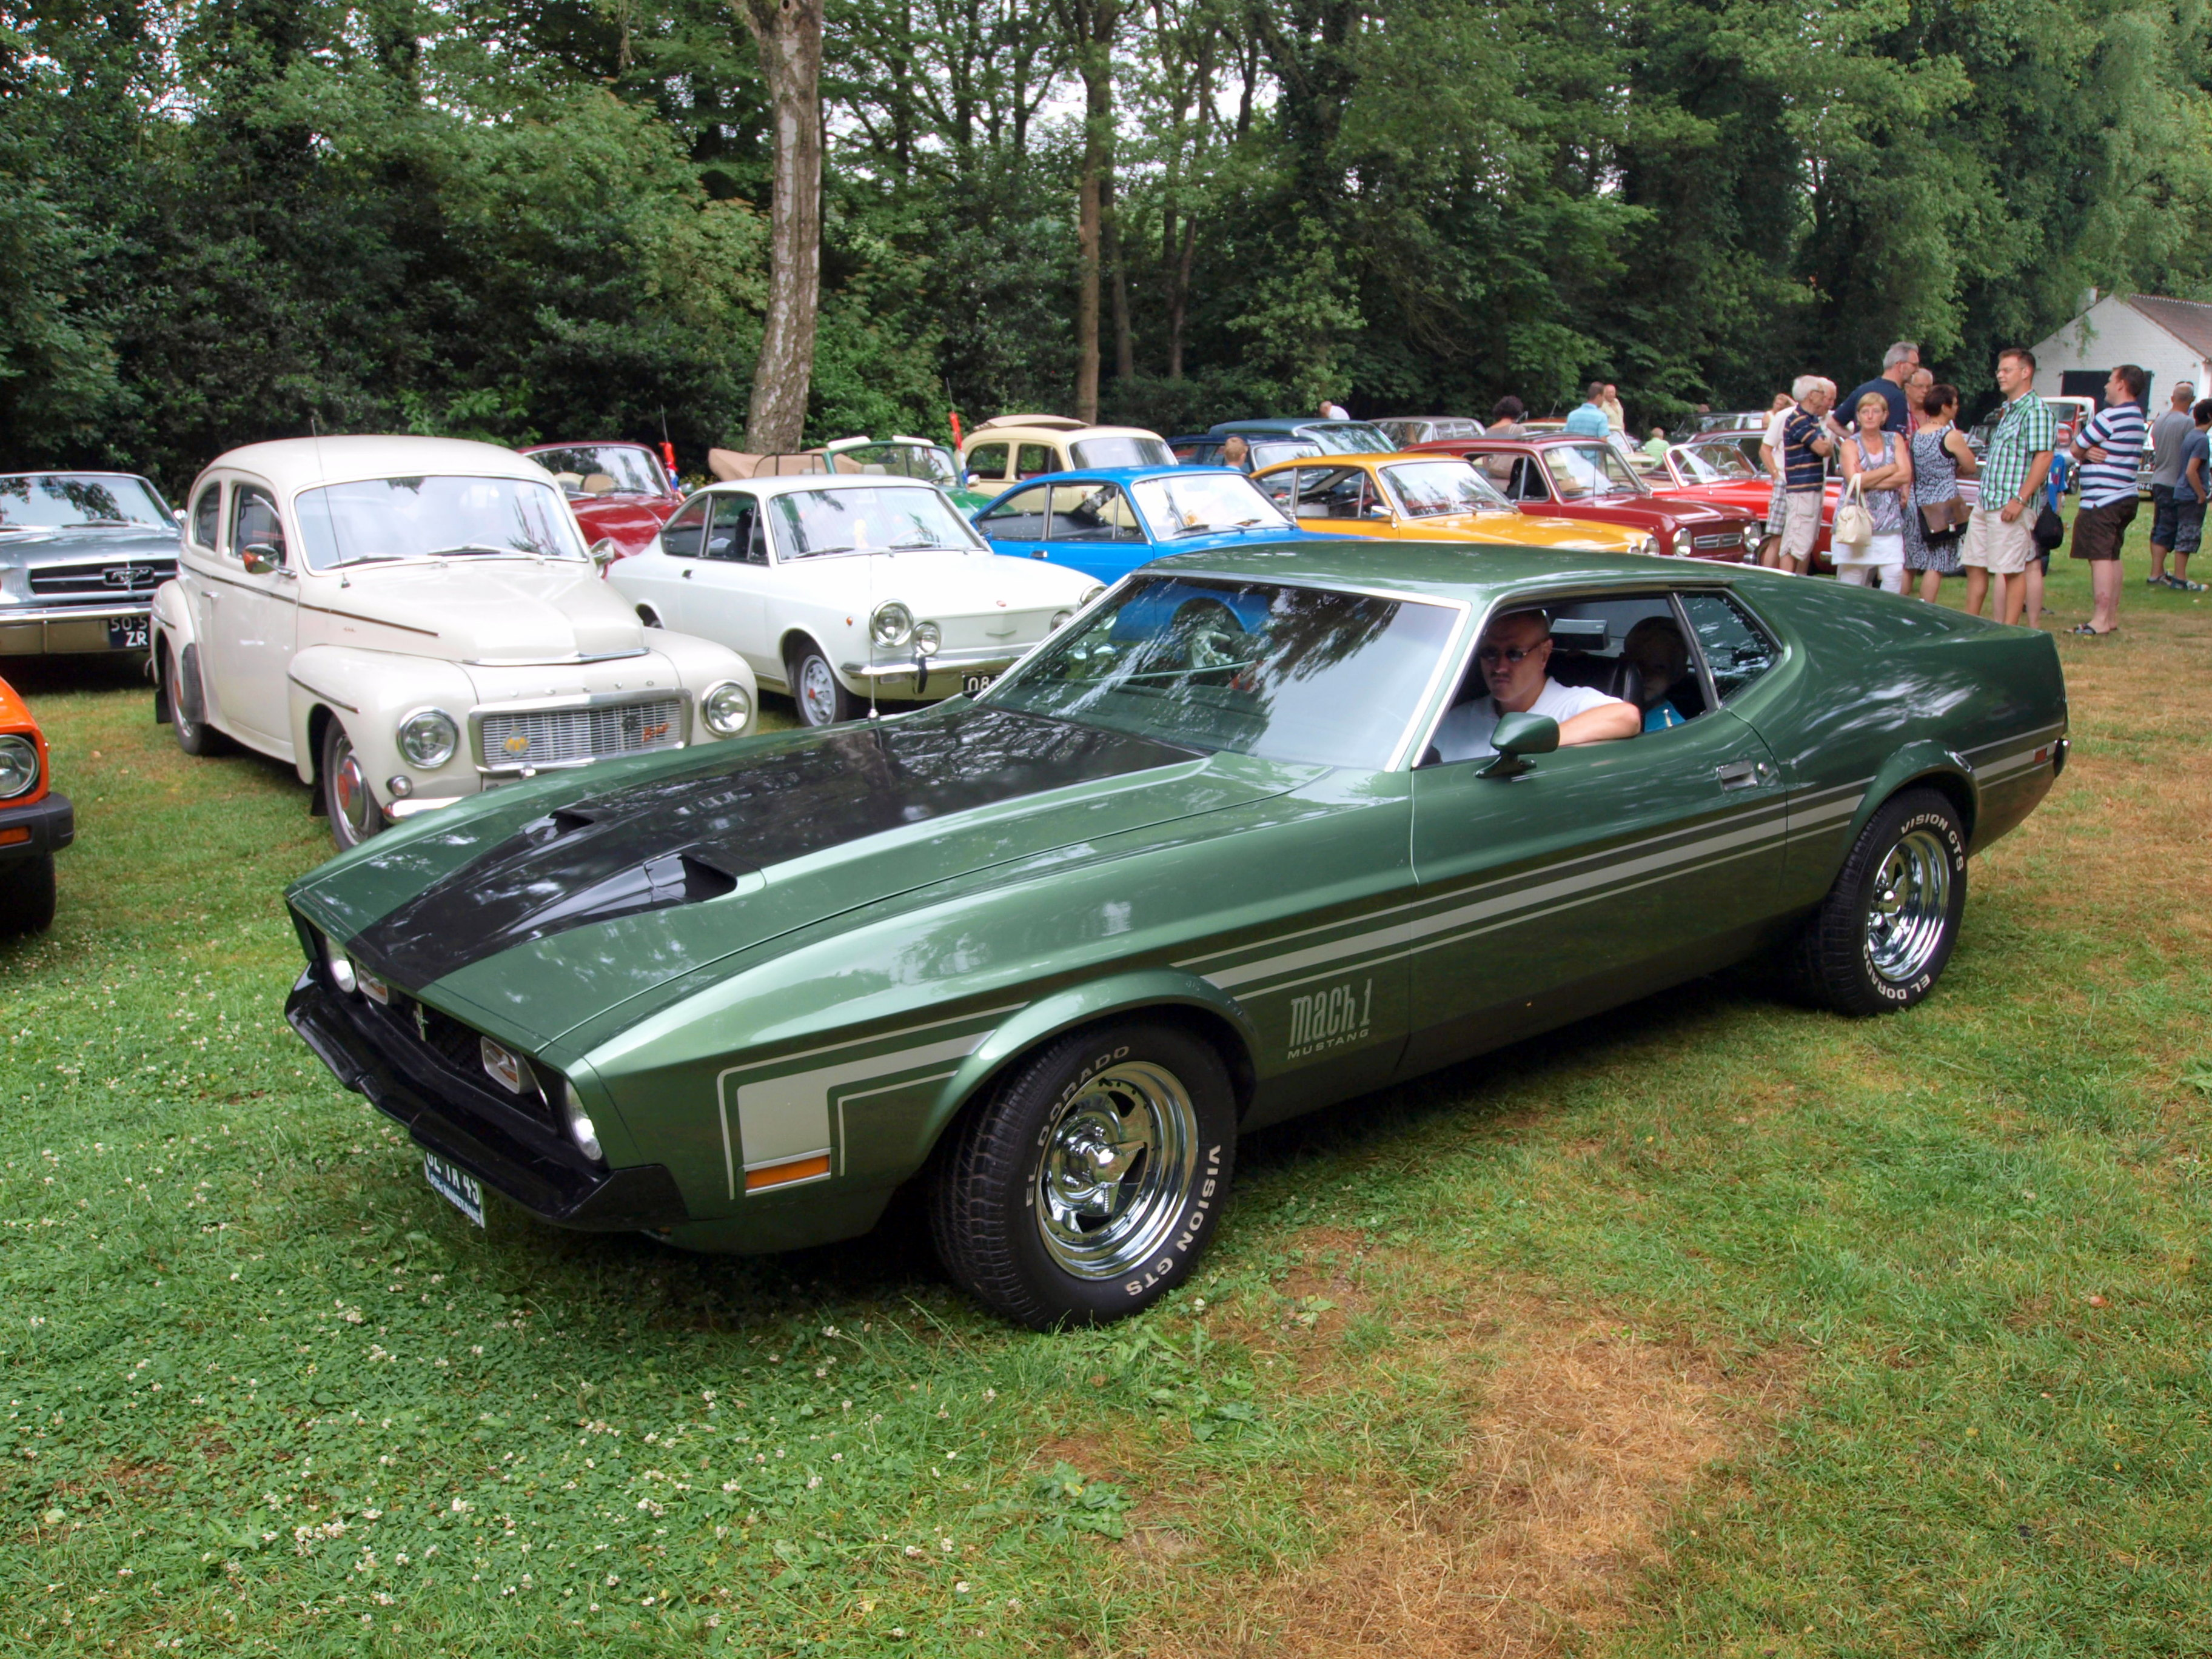 FileFord Mustang Mach 1 1973 pic2JPG  Wikimedia Commons